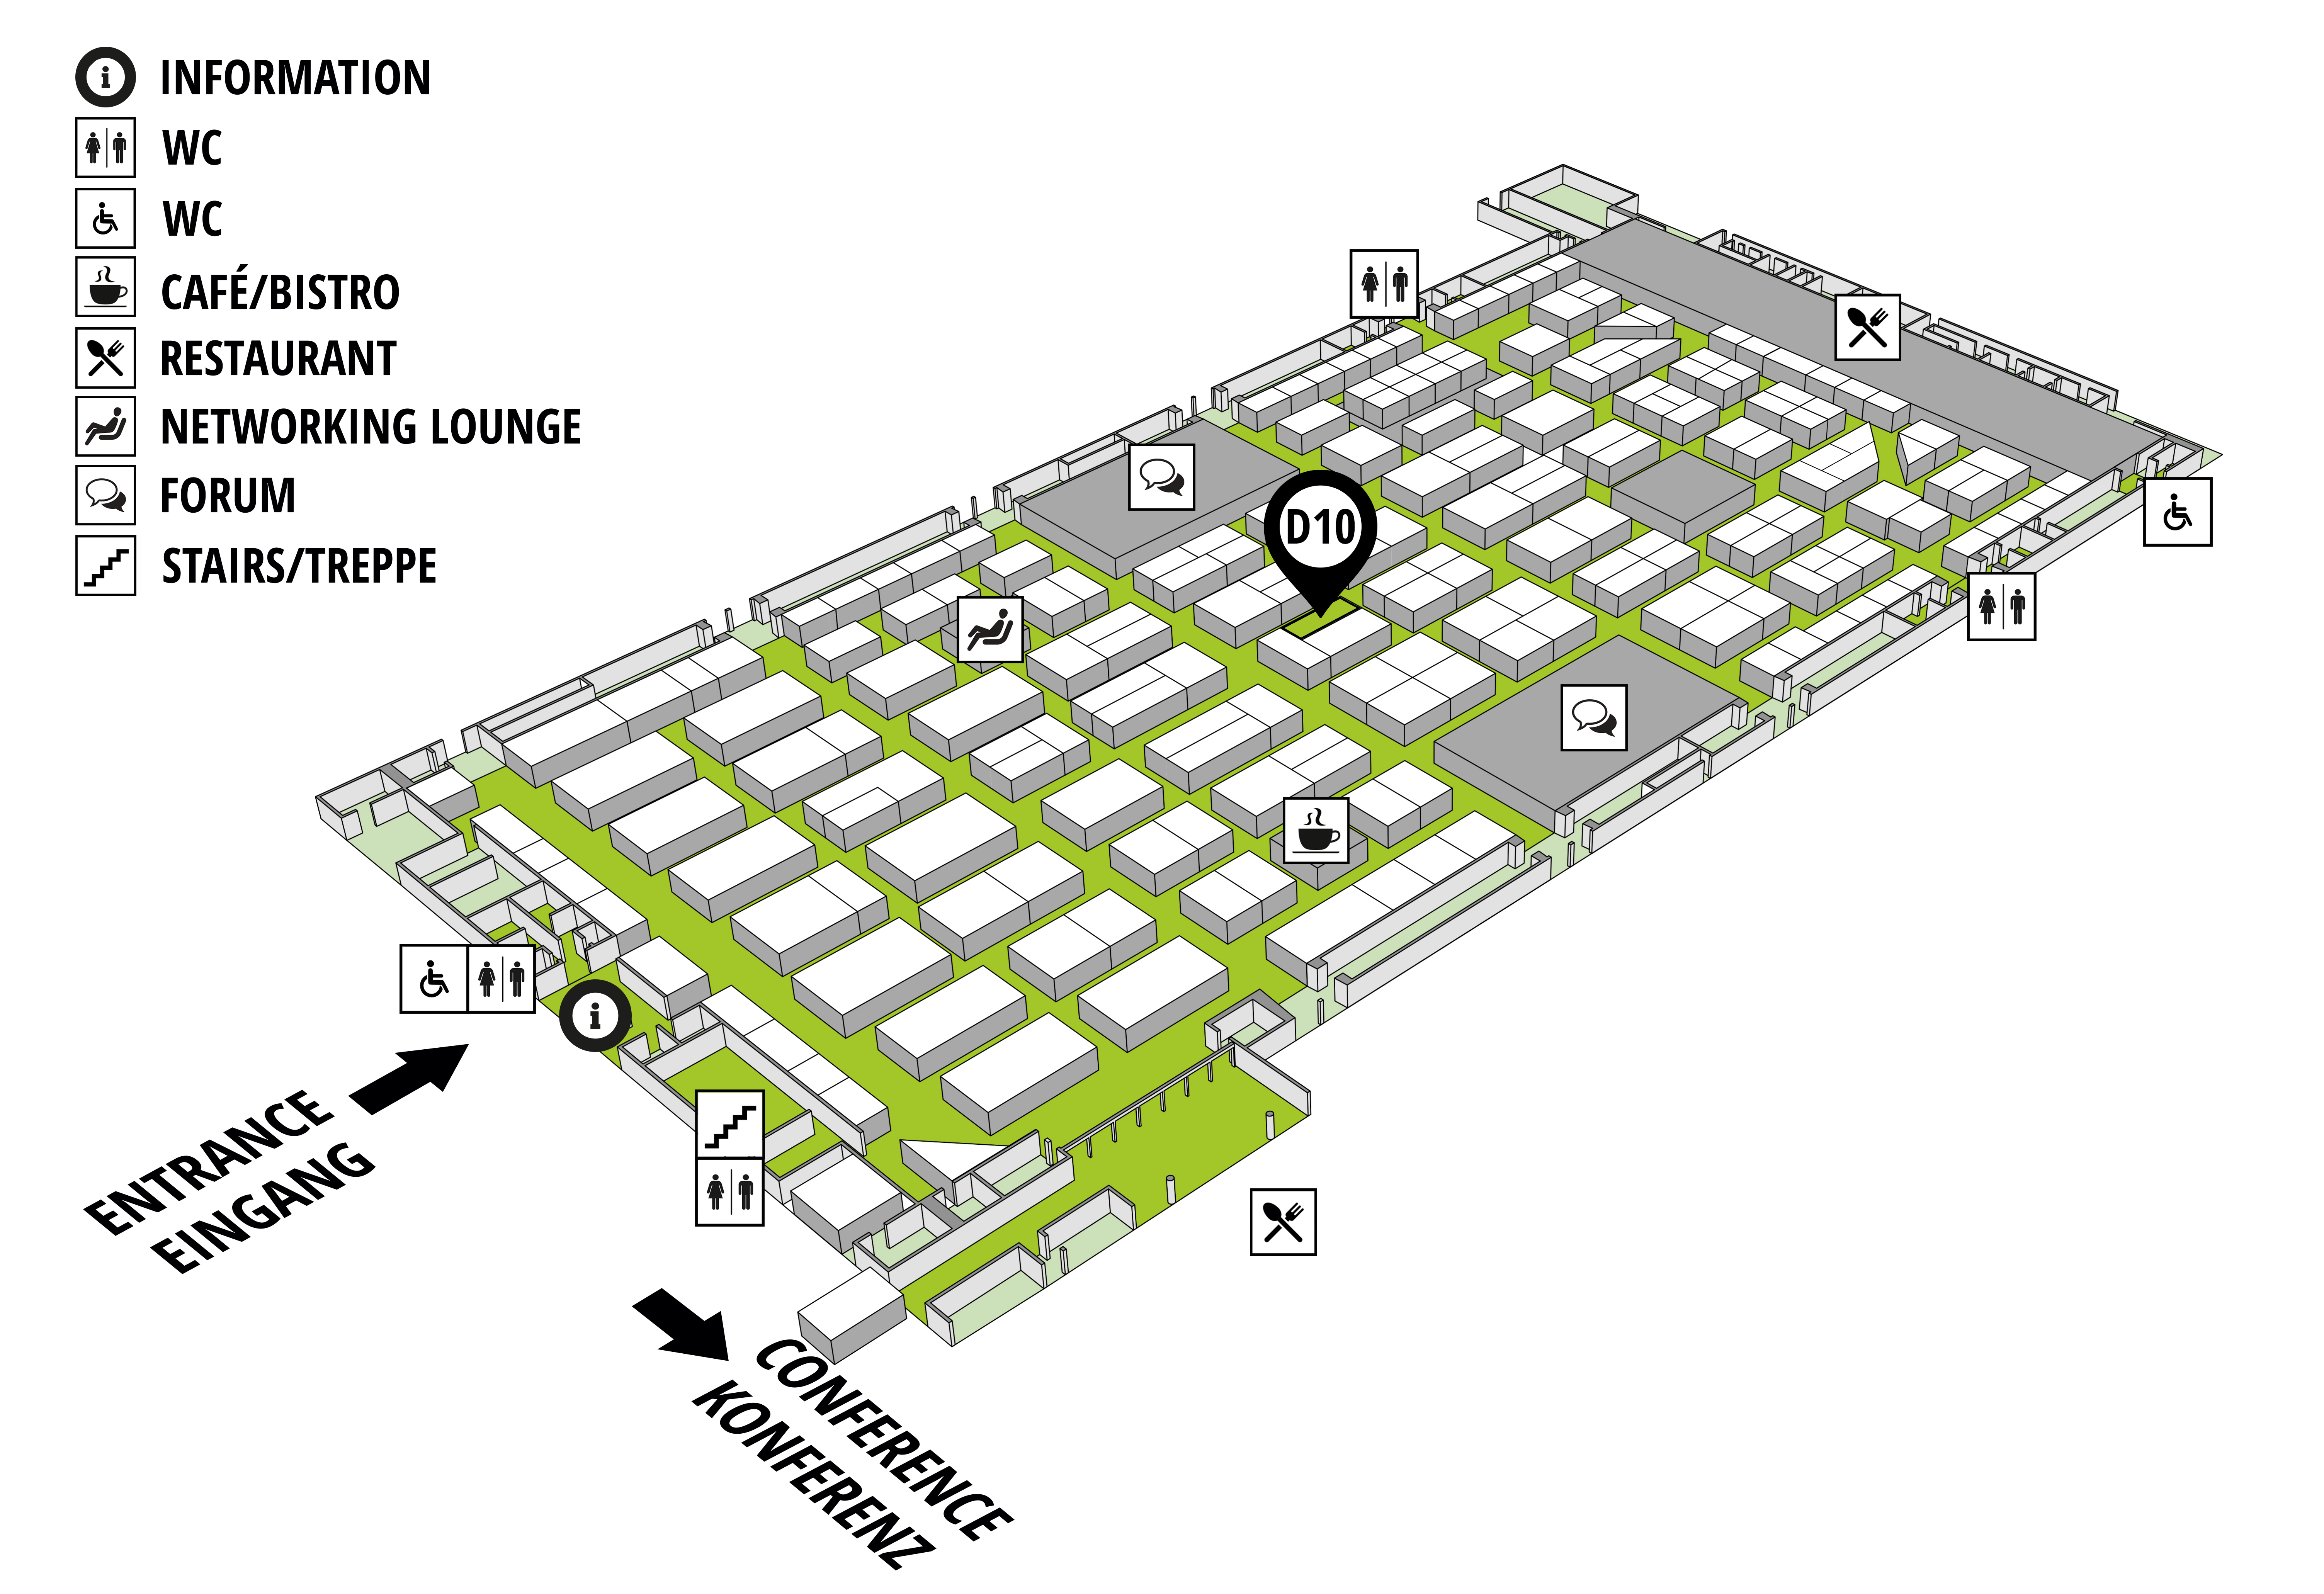 IT-TRANS 2018 - International Conference and Exhibition on Intelligent Urban Transport Systems hall map (dm-arena): stand D10